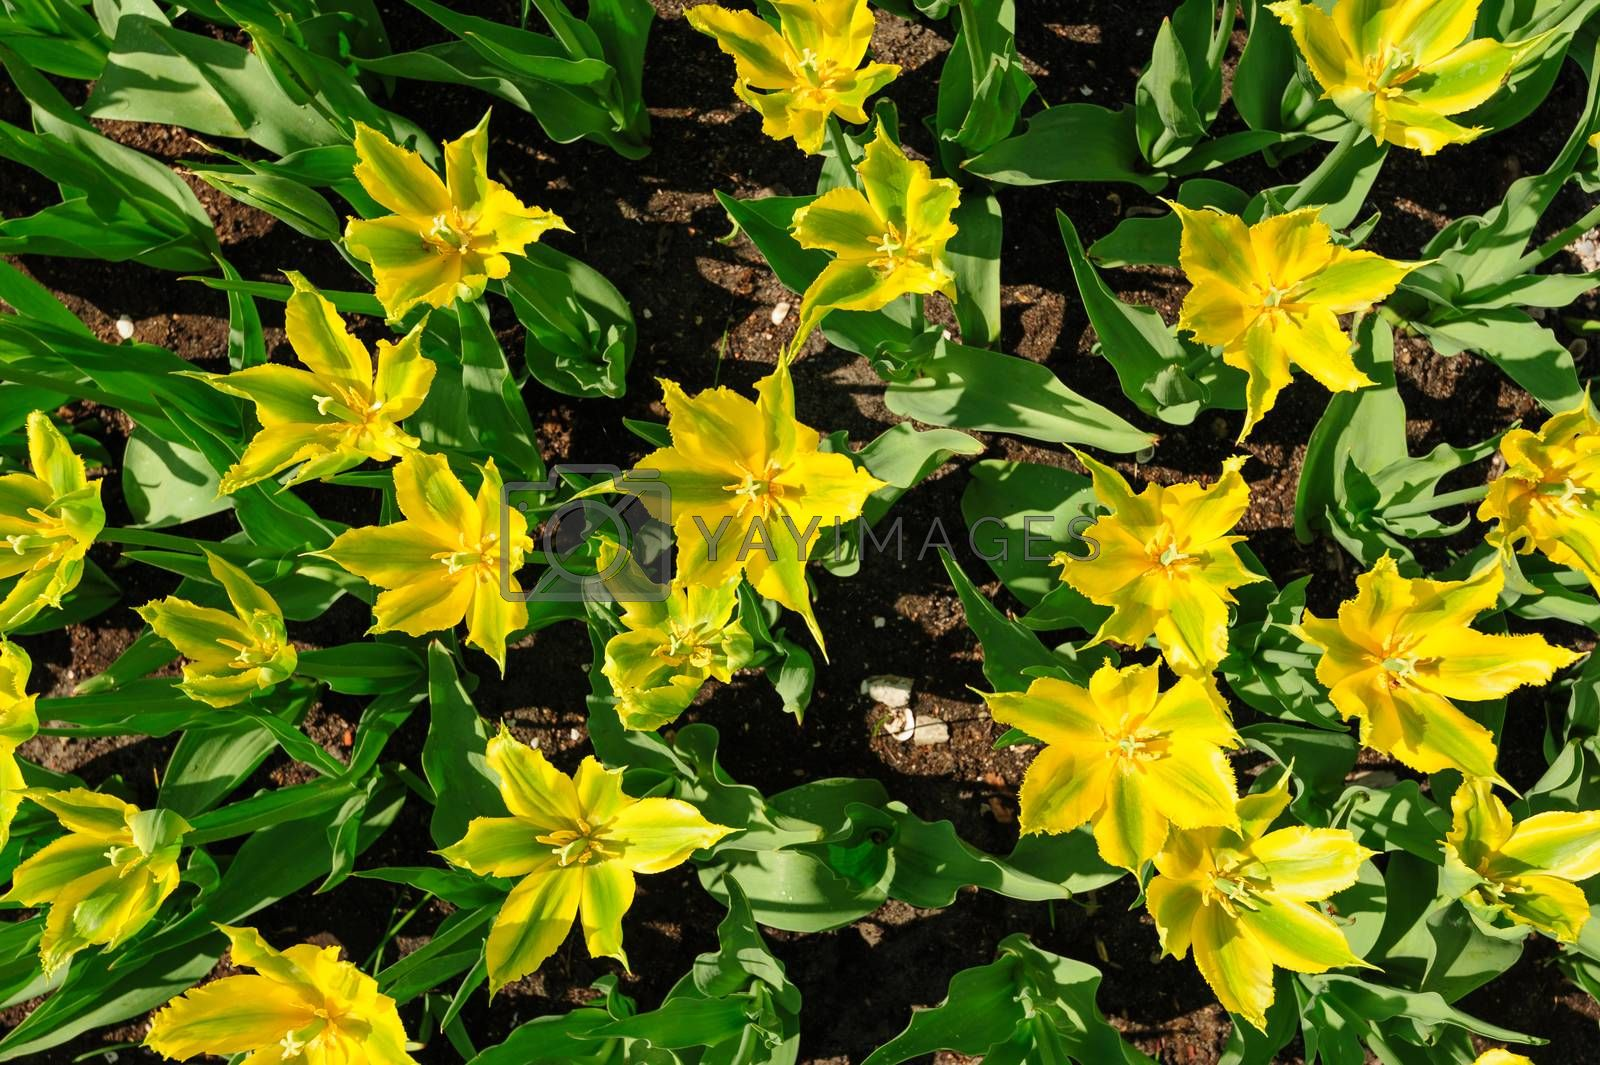 Yellow-green tulips flowerbed shot from above, Keukenhof Gardens in Lisse, Netherlands. Good as background or wallpaper.